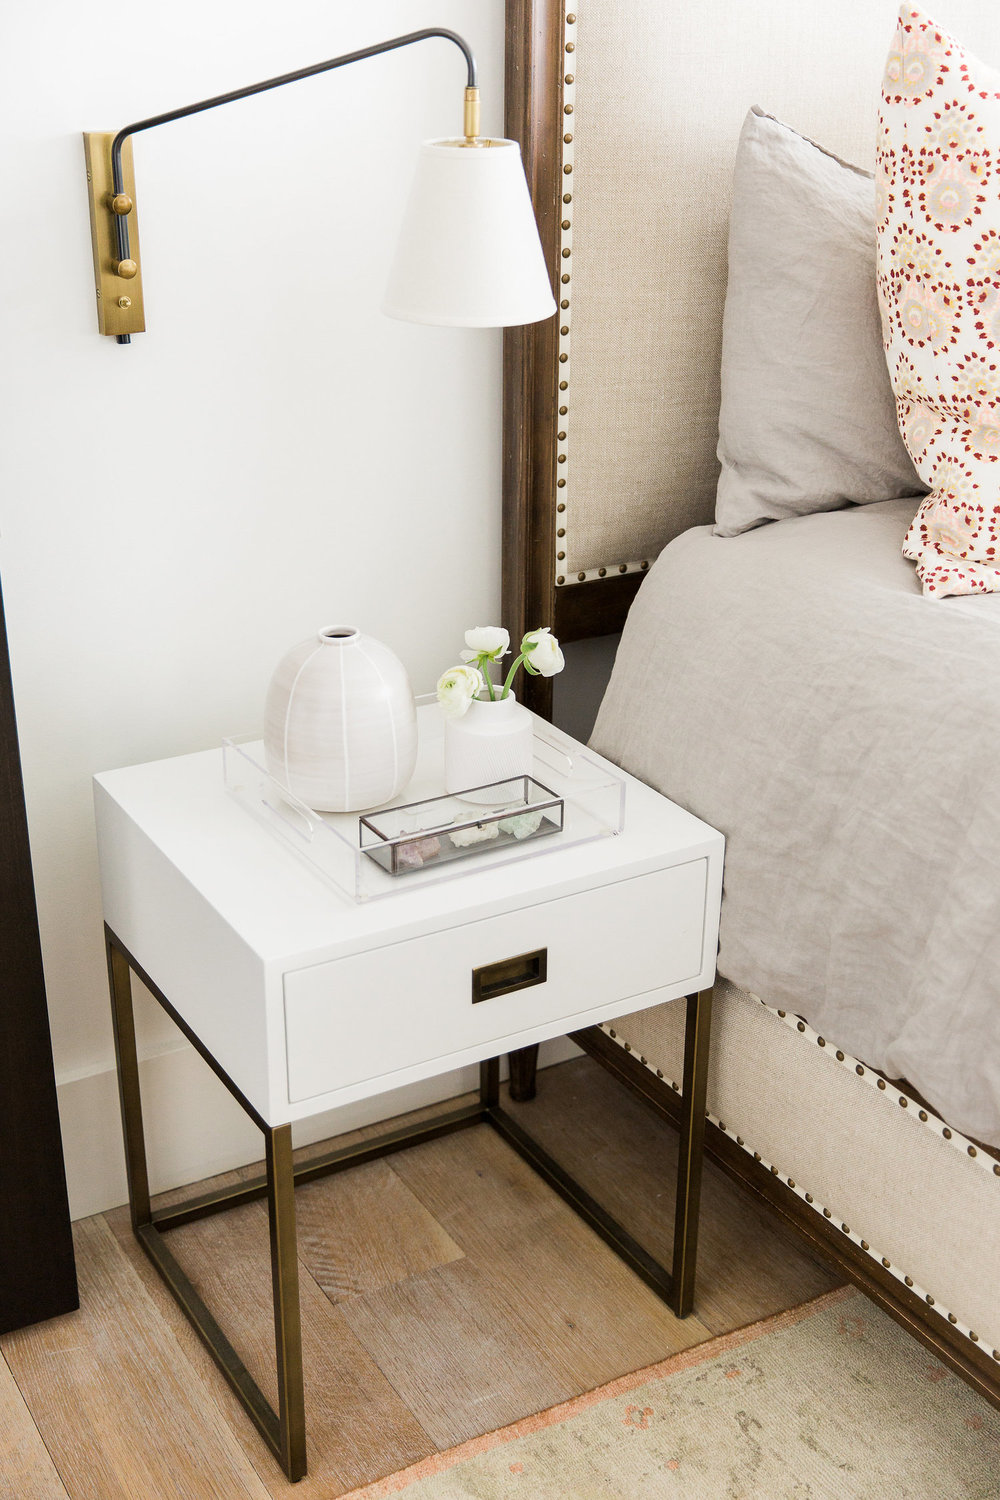 Minimalist white nightstand next to bed